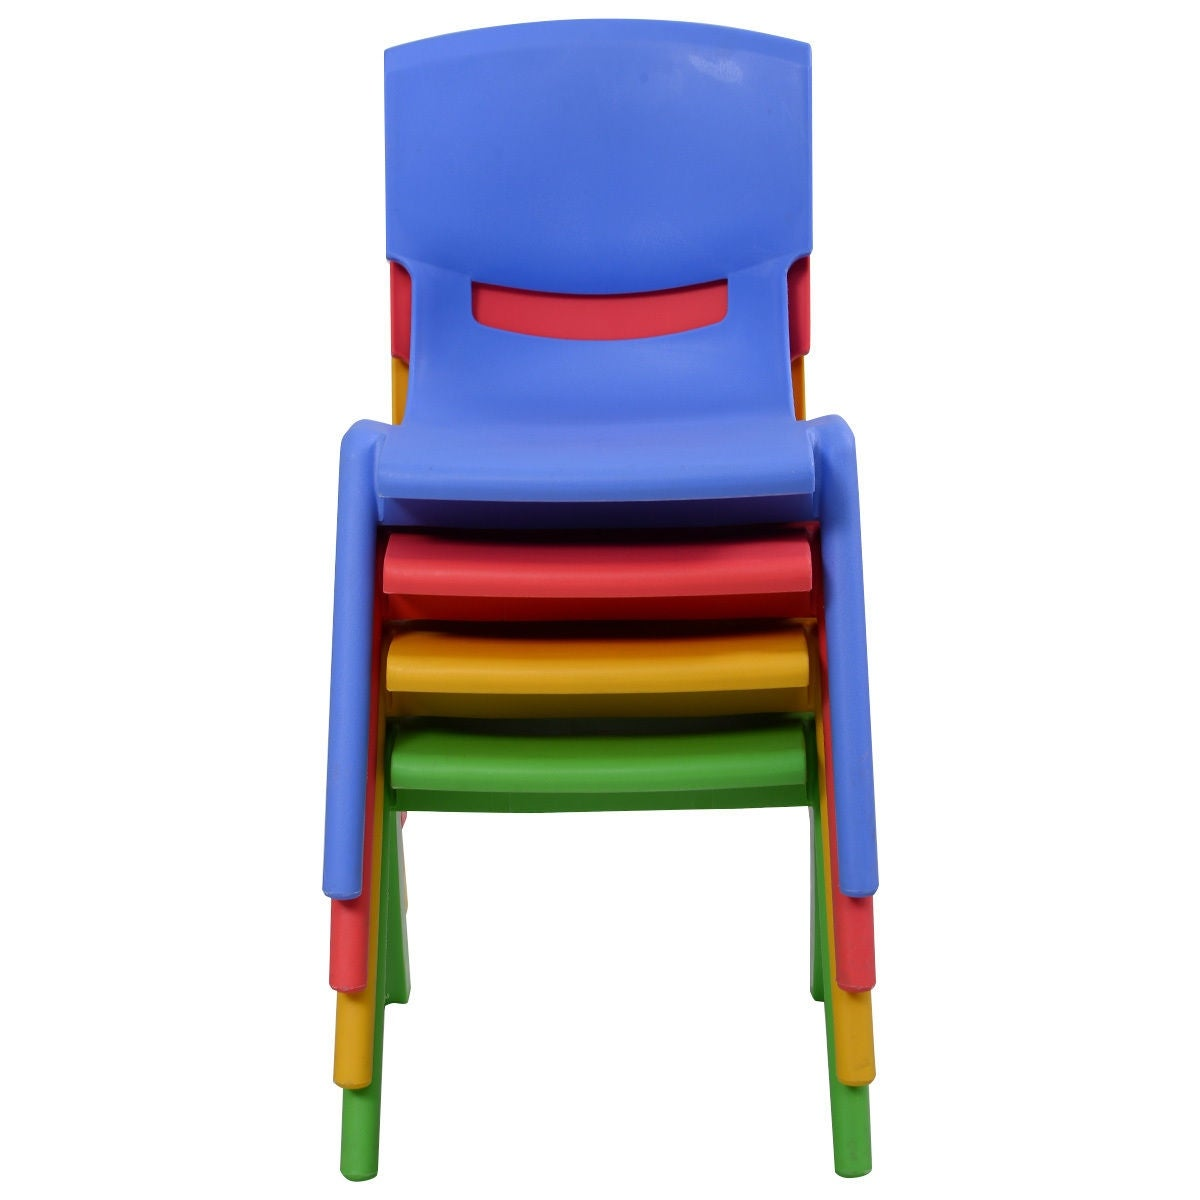 Costway Set Of 4 Kids Plastic Chairs Stackable Play And Learn Furniture  Colorful   Free Shipping Today   Overstock.com   23535017